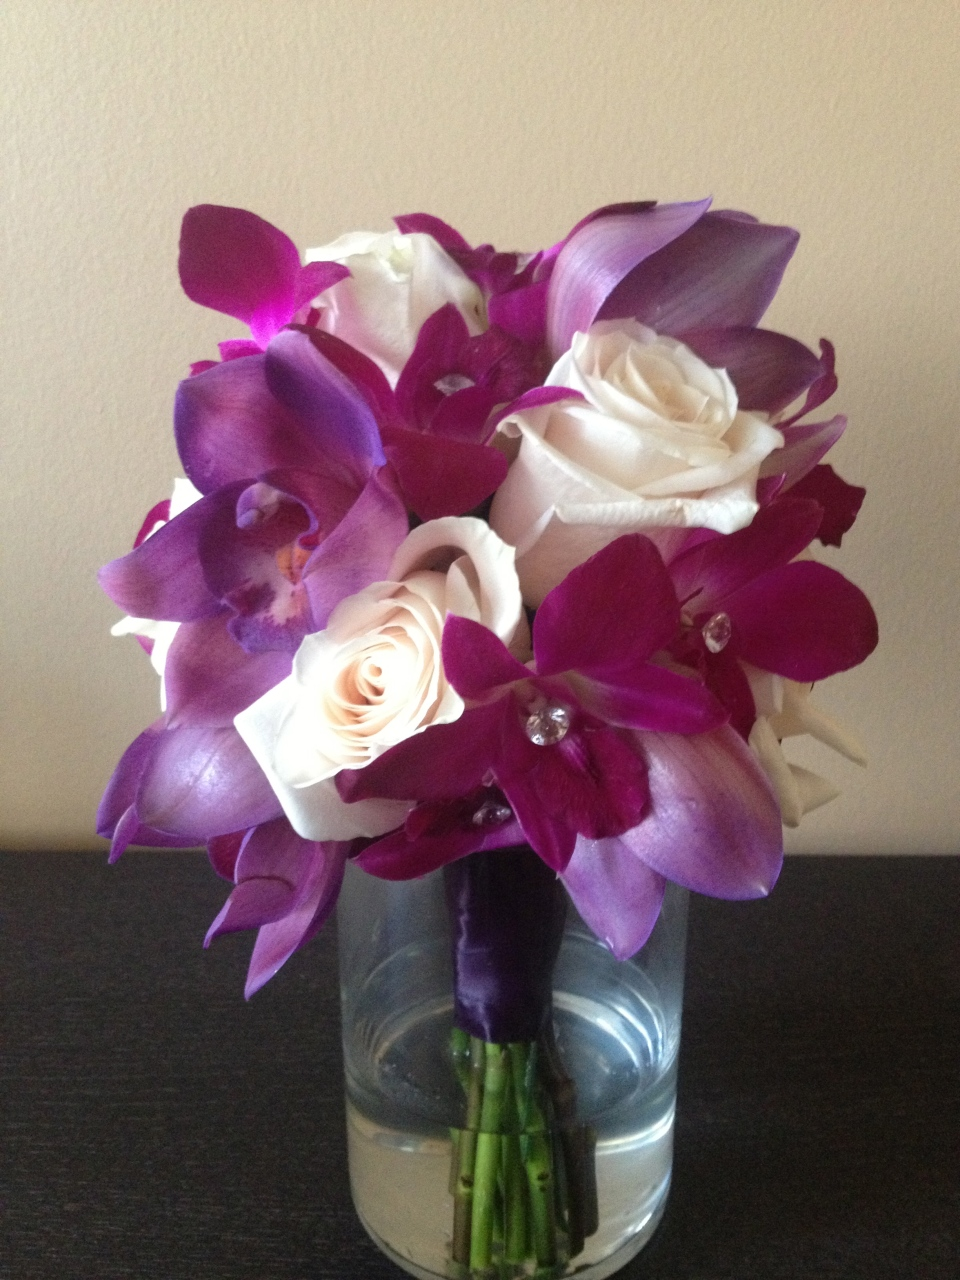 Purple cymbidium and dedrobium orchid bouquet with white roses